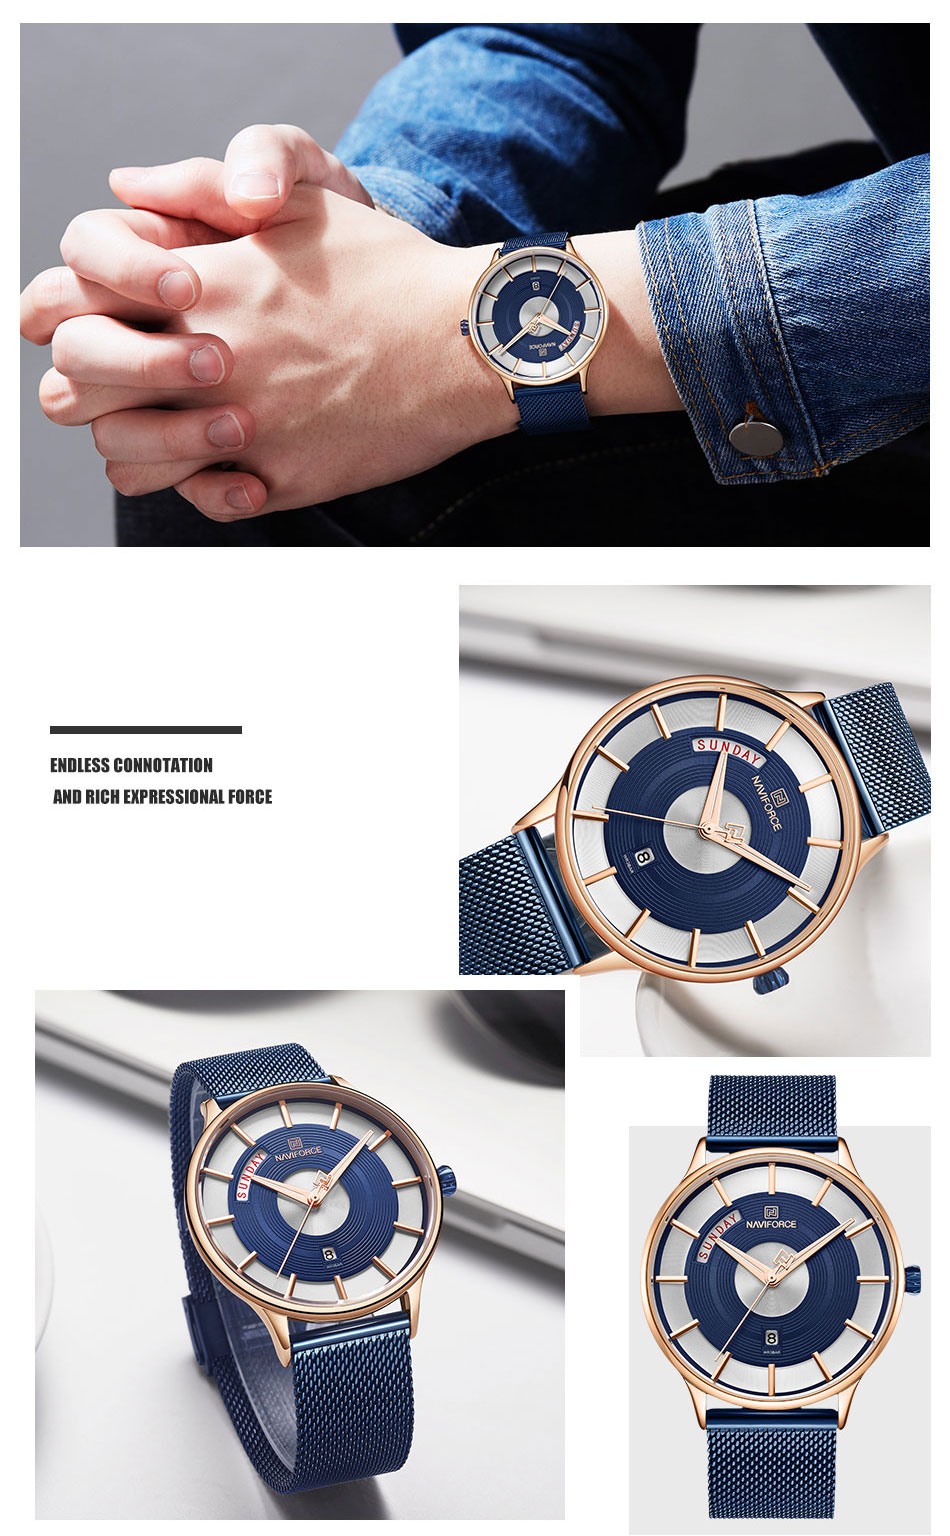 2019 new arrival mens watches luxury most popular products relojes hombre wristwatch hot selling naviforce watch